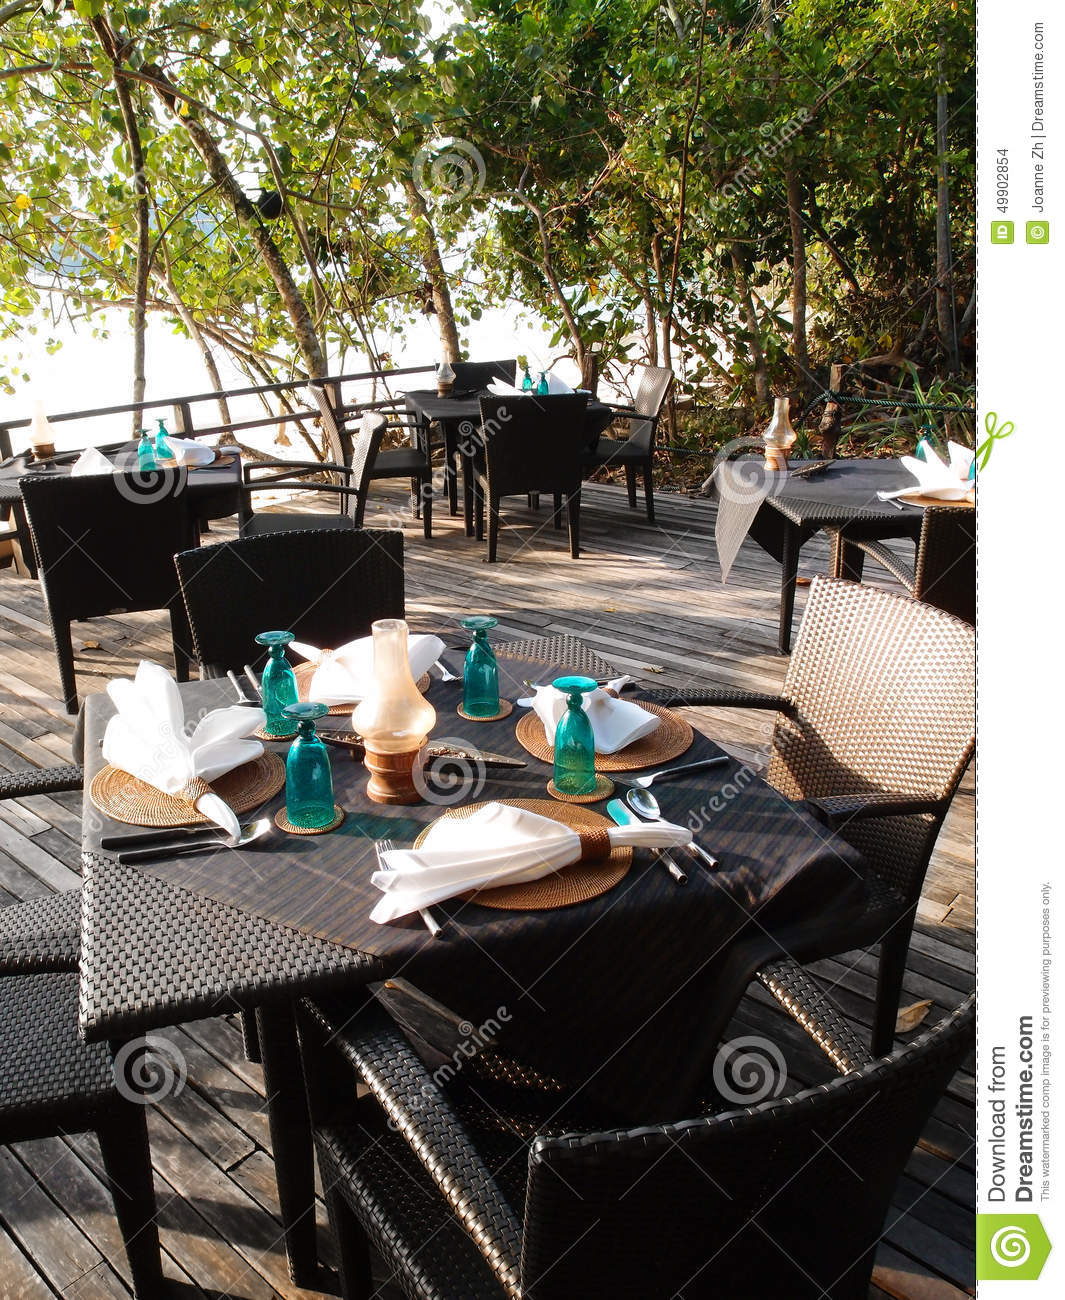 Beachfront outdoor al fresco cafe